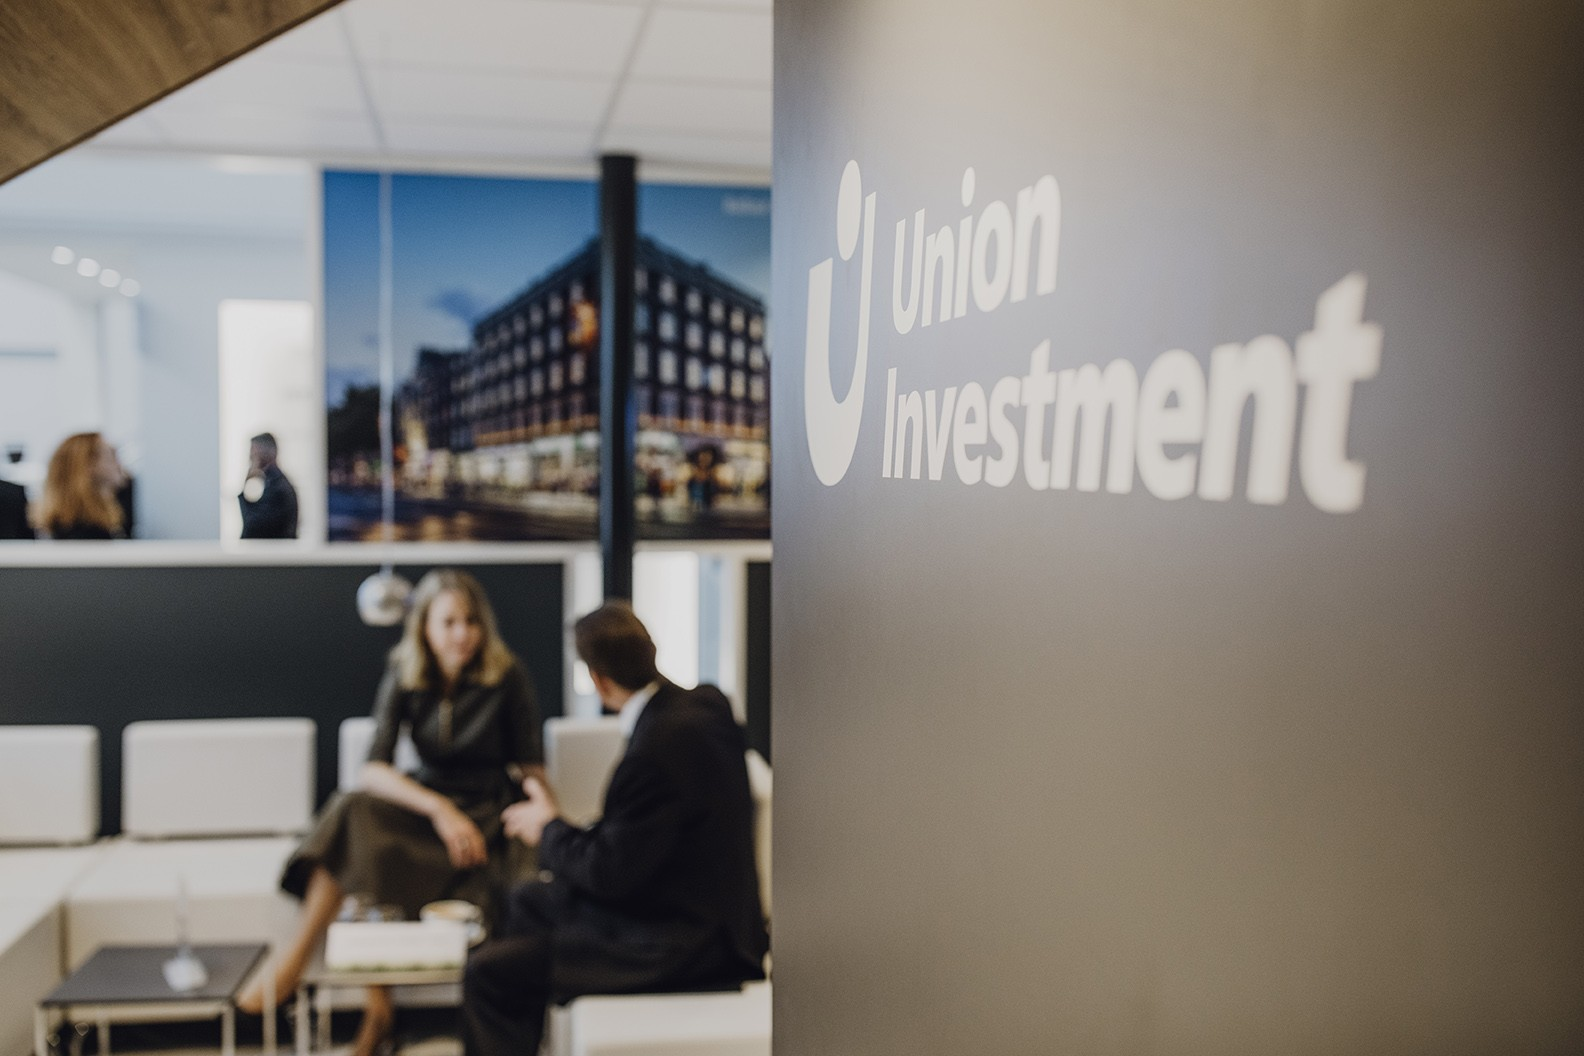 , Fotoreportage und Messedokumentation für Union Investment